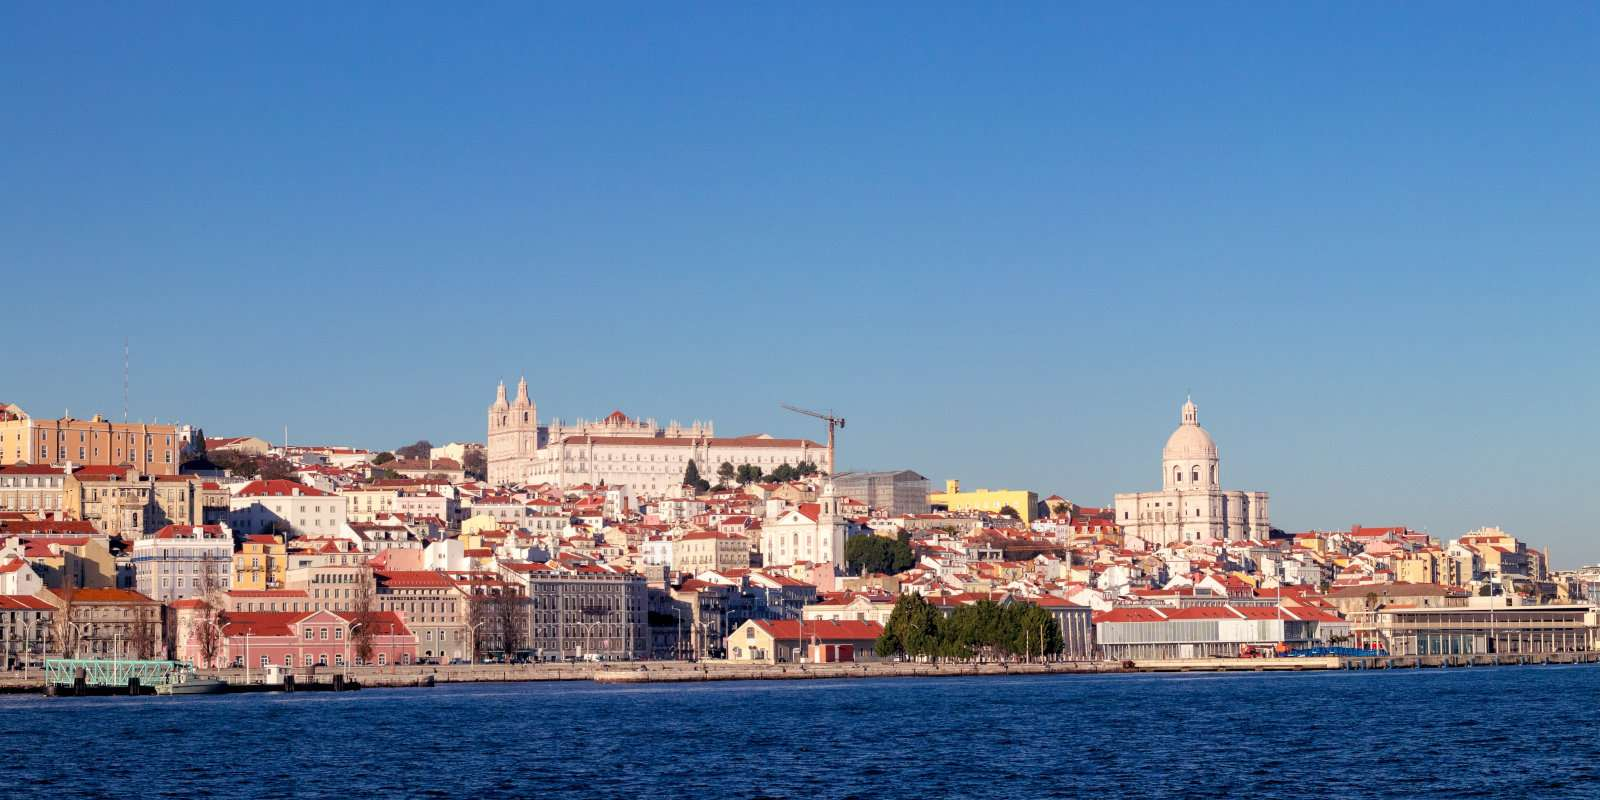 VACAYA's Lisbon Pride cruise is the perfect mix of partying, relaxation and culture